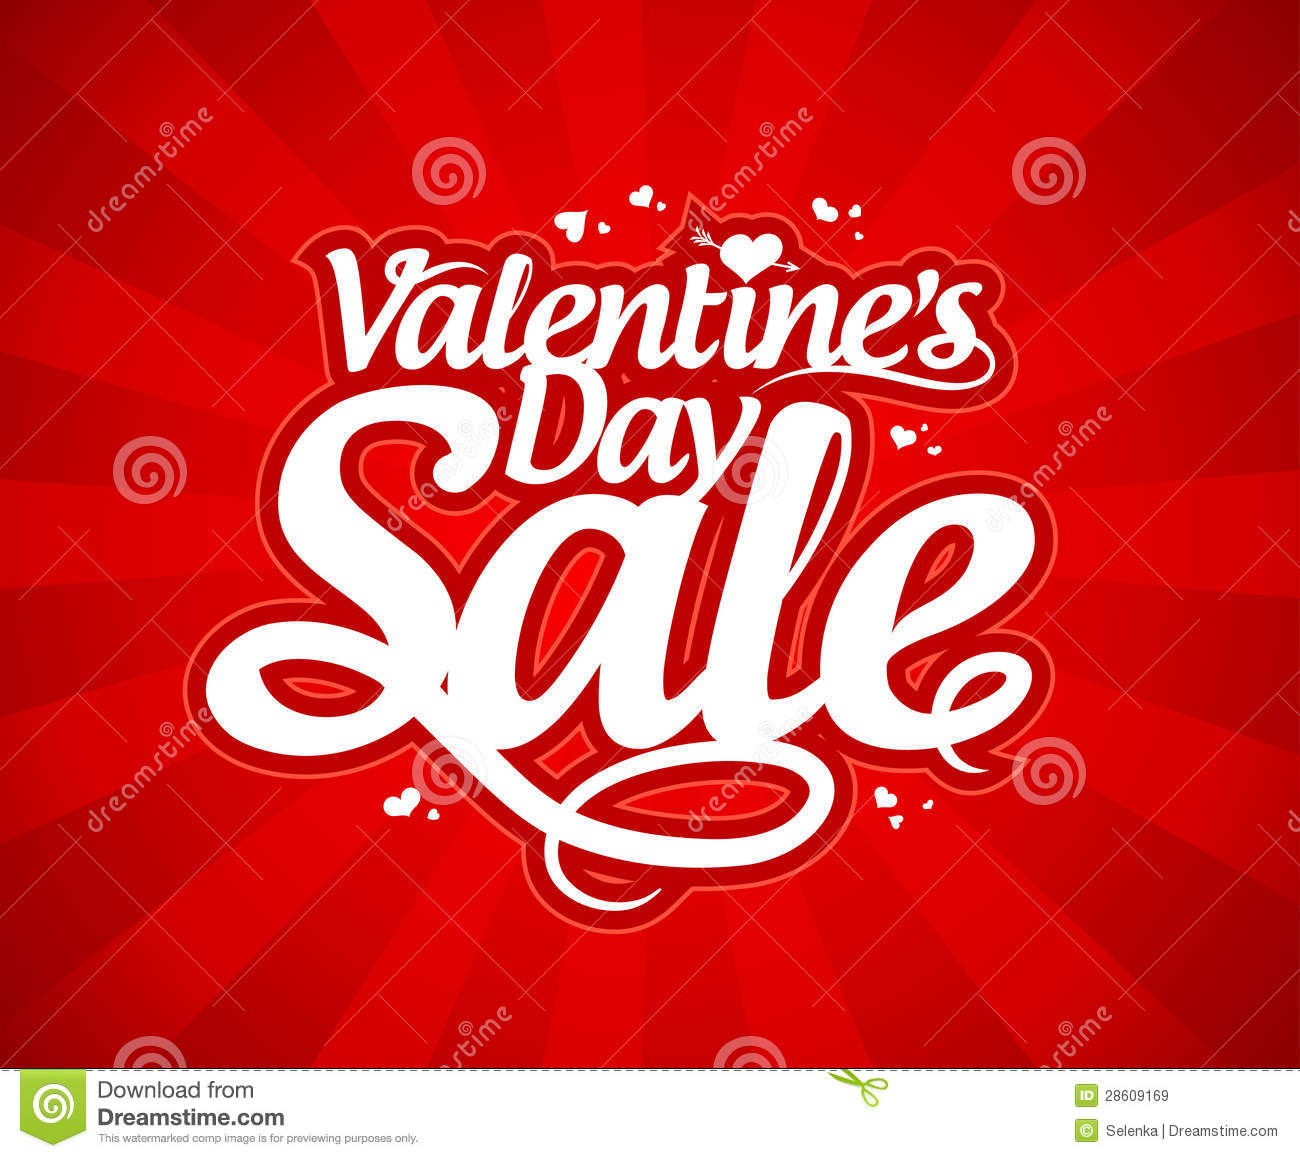 Valentine`s Day Sale. Royalty Free Stock Images - Image: 28609169